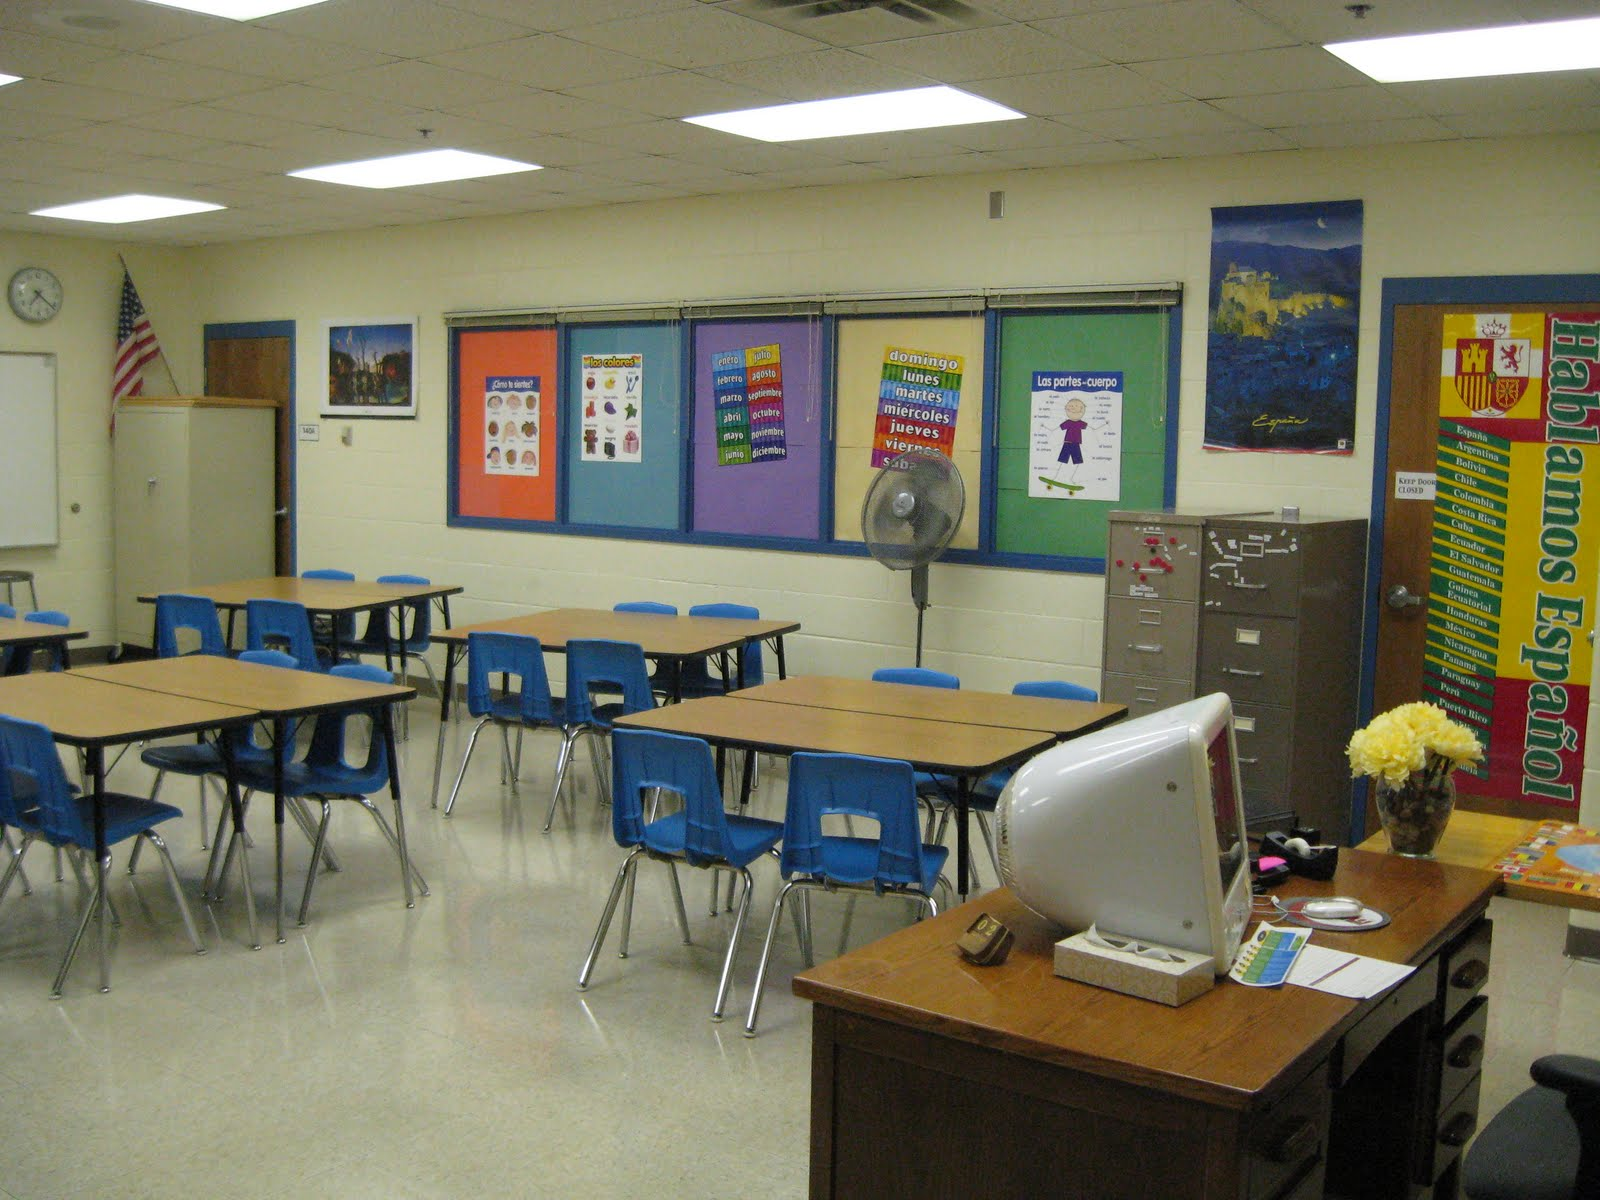 Classroom Decoration Ideas For ~ Project decoration classroom decorations